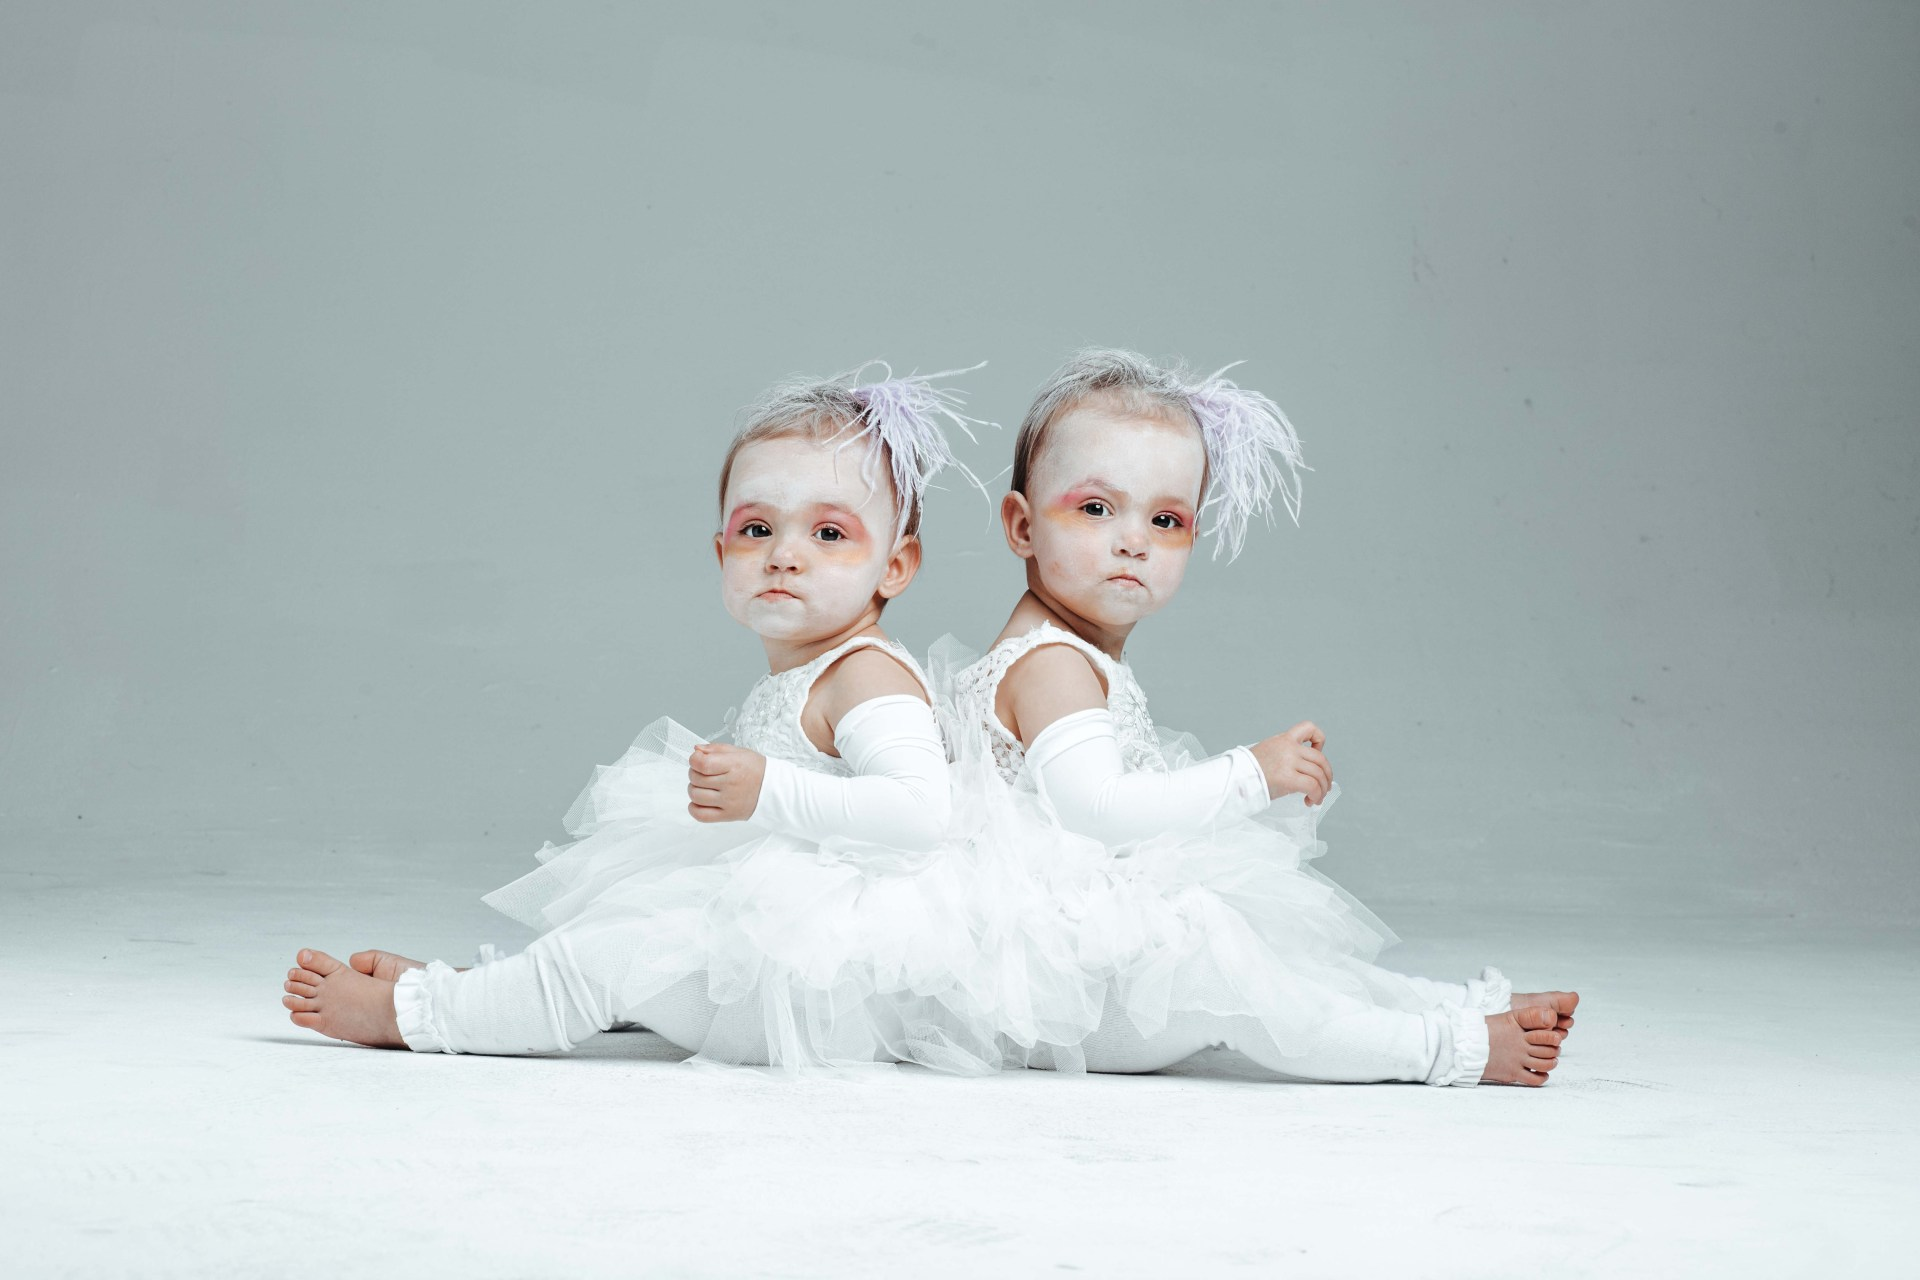 best twin halloween costume ideas | palms to pines